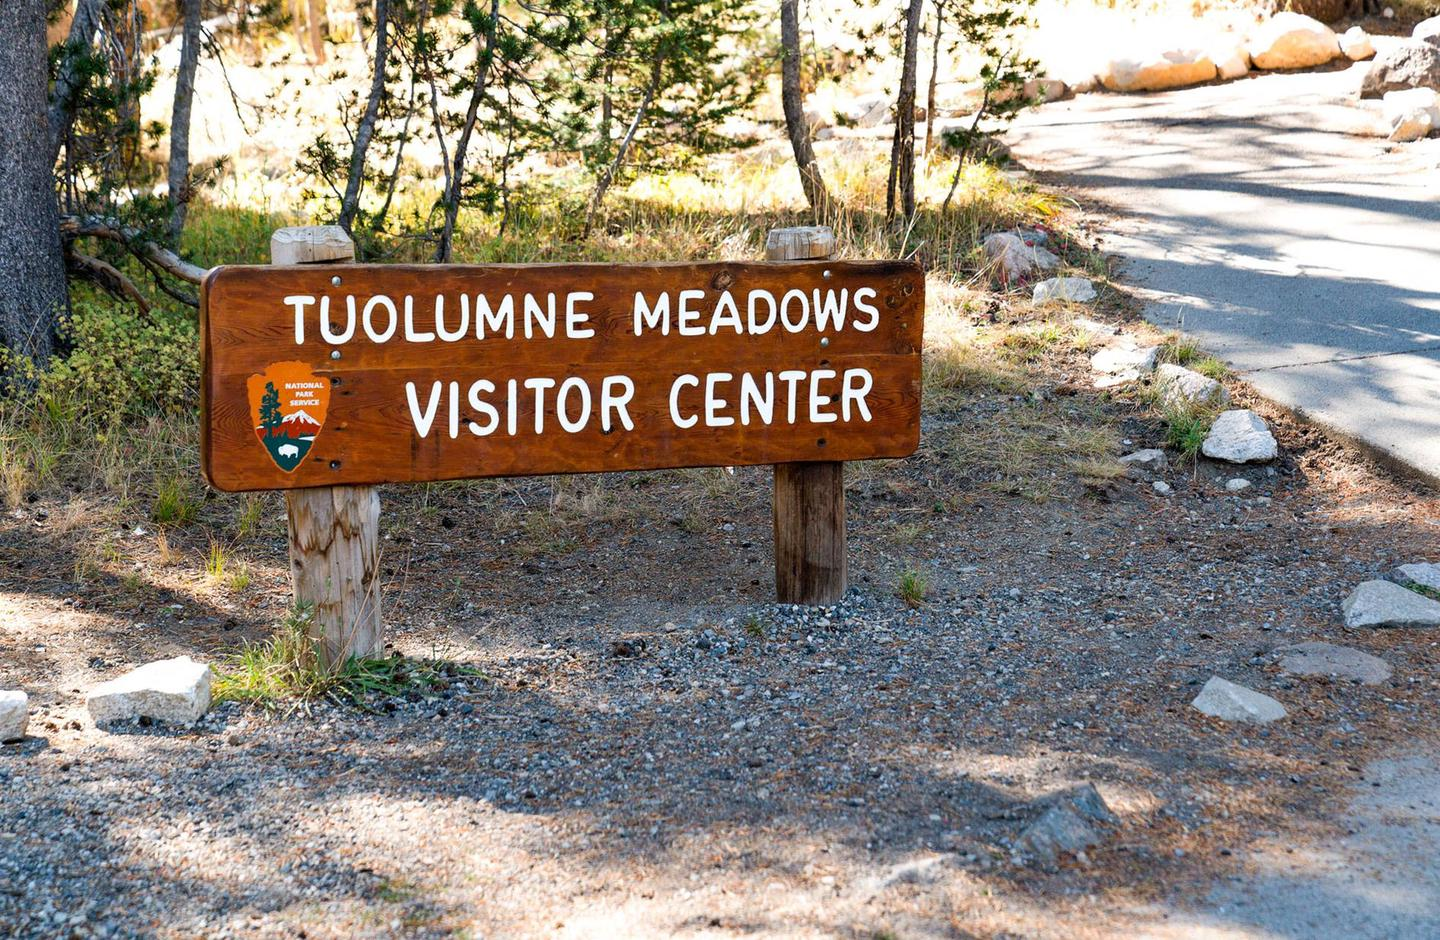 Tuolumne Meadows Visitor Center SignTuolumne Meadows Visitor Center sign